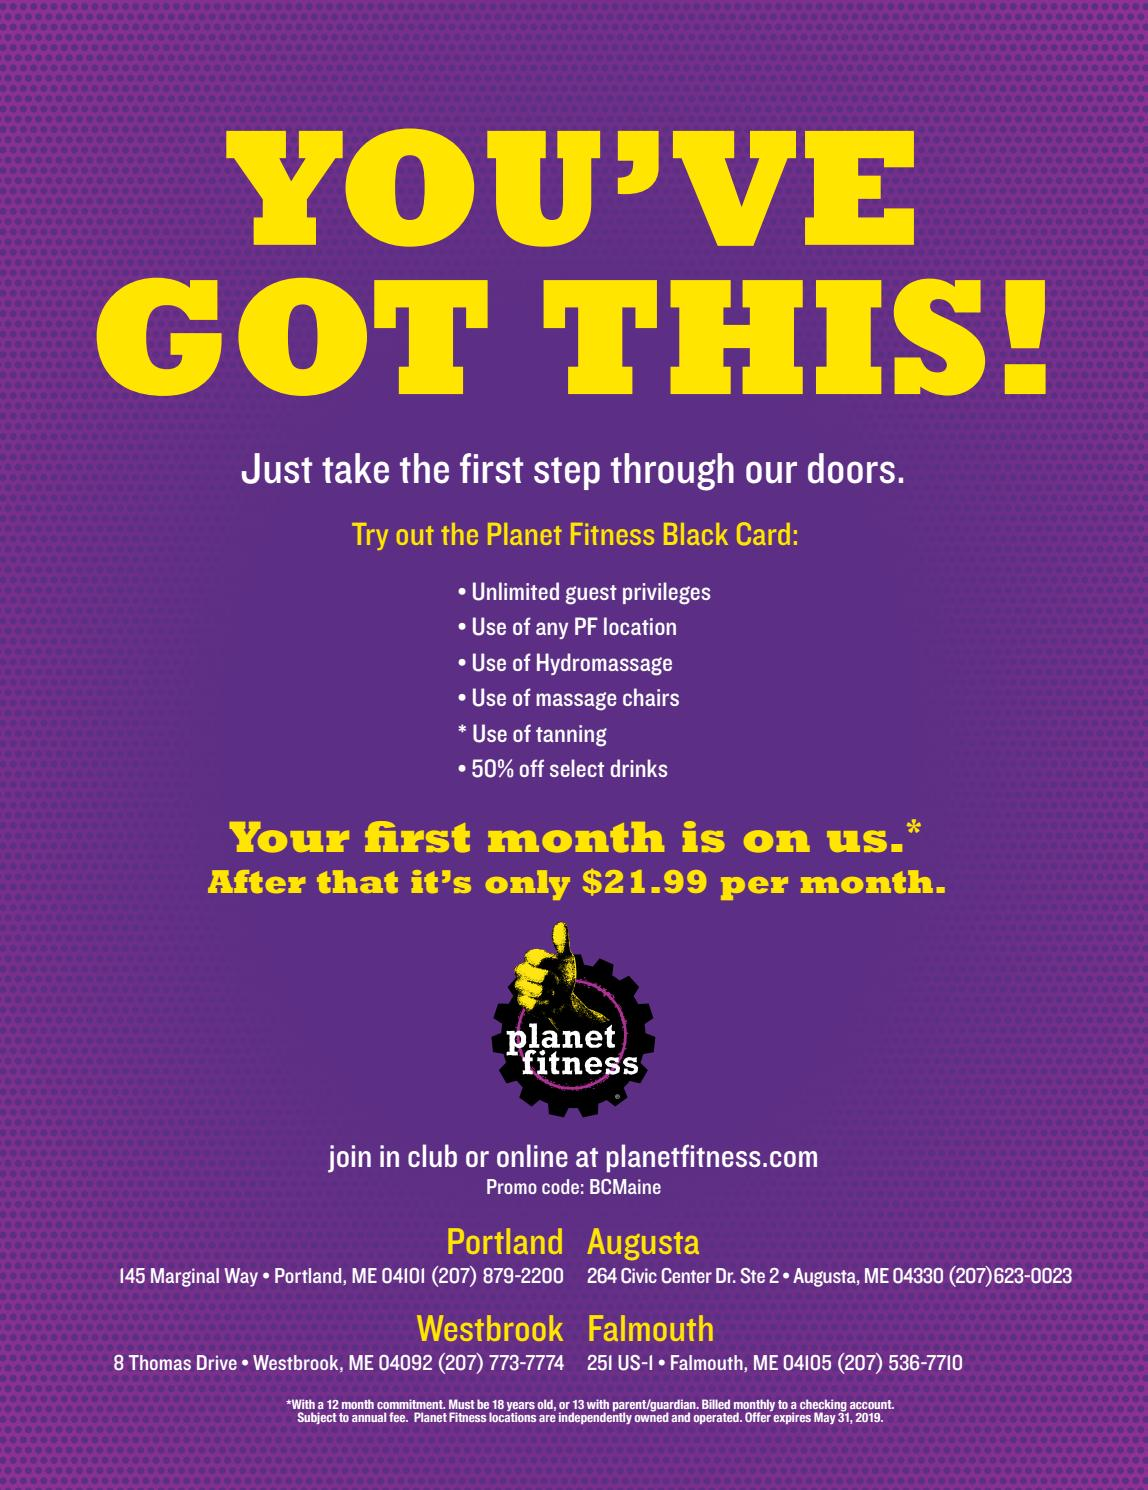 Planet Fitness Promo Code No Annual Fee 2019 : planet, fitness, promo, annual, Planet, Fitness, Promo